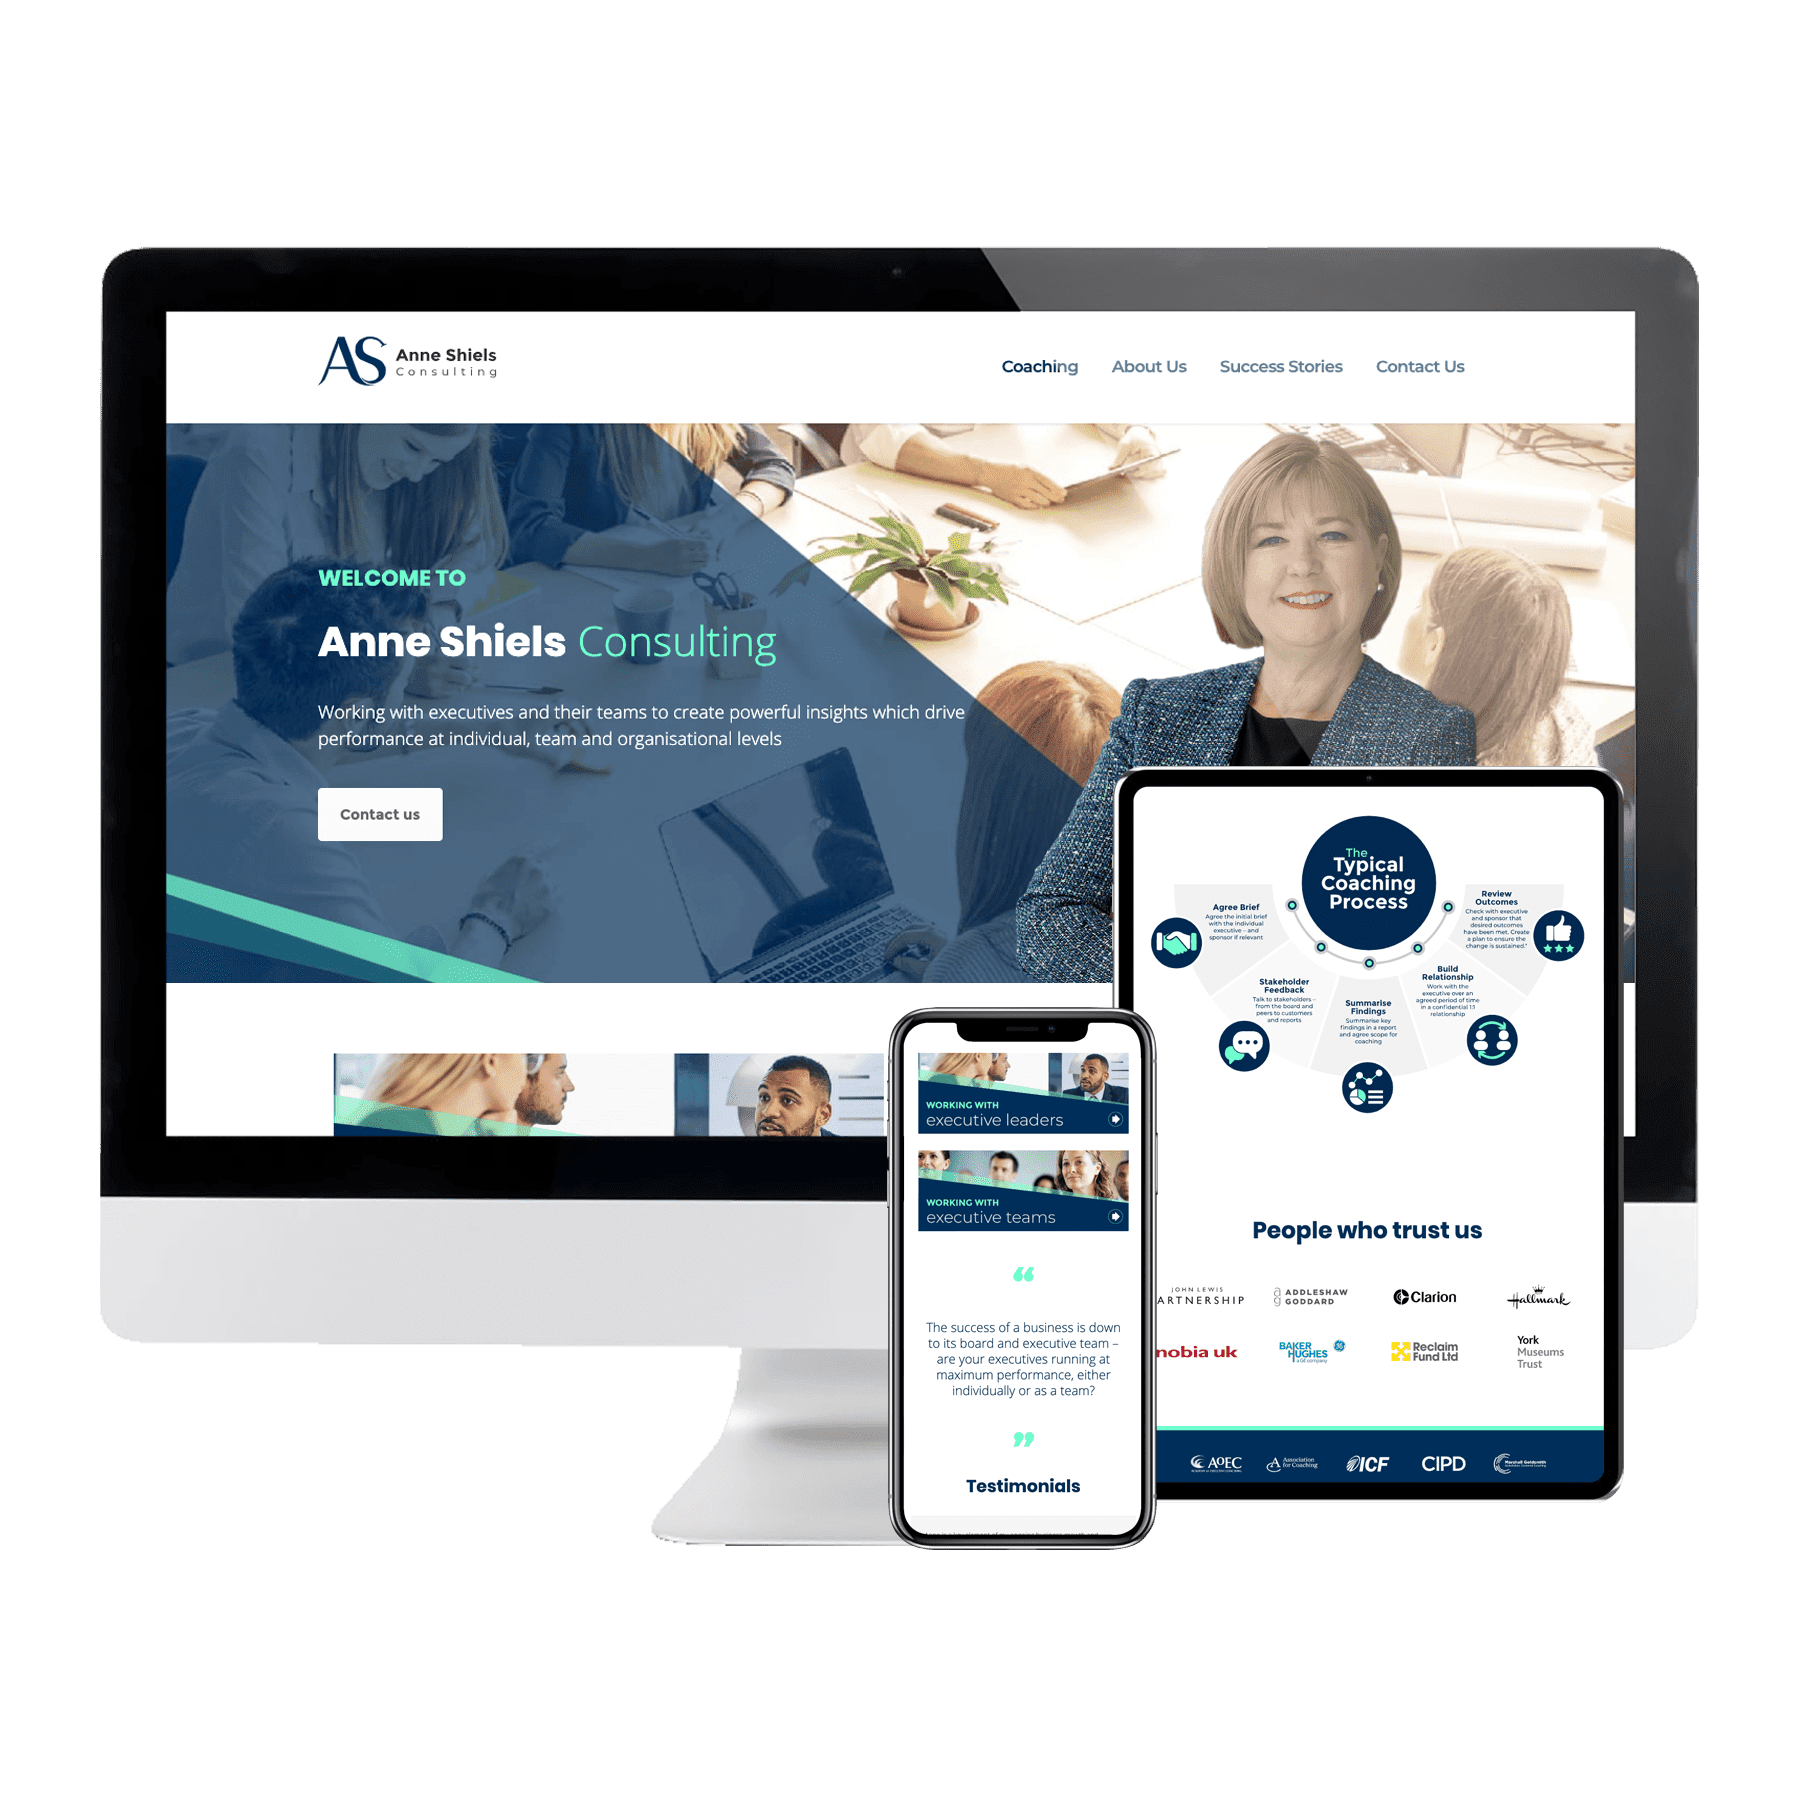 Anne Shiels Consulting Website design